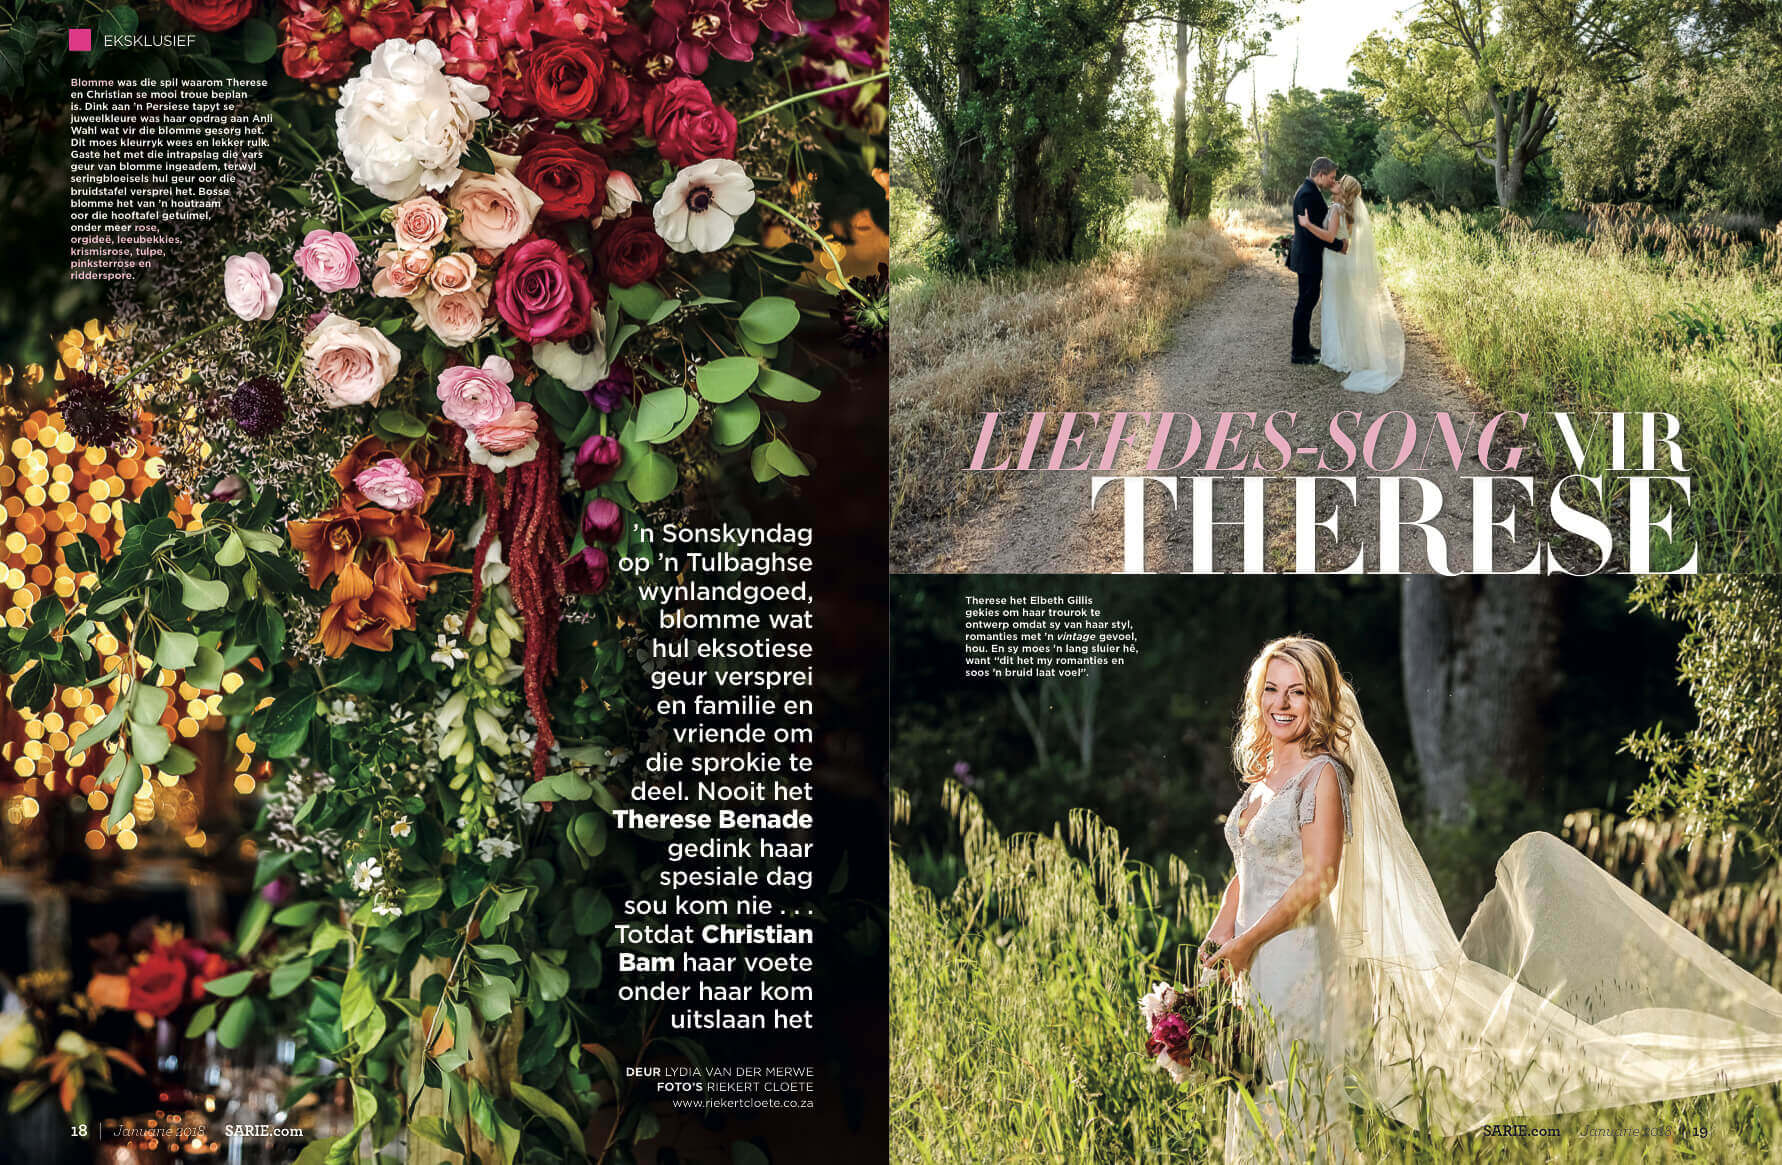 Featured in Sarie (Chris Bam and Therese Benade)